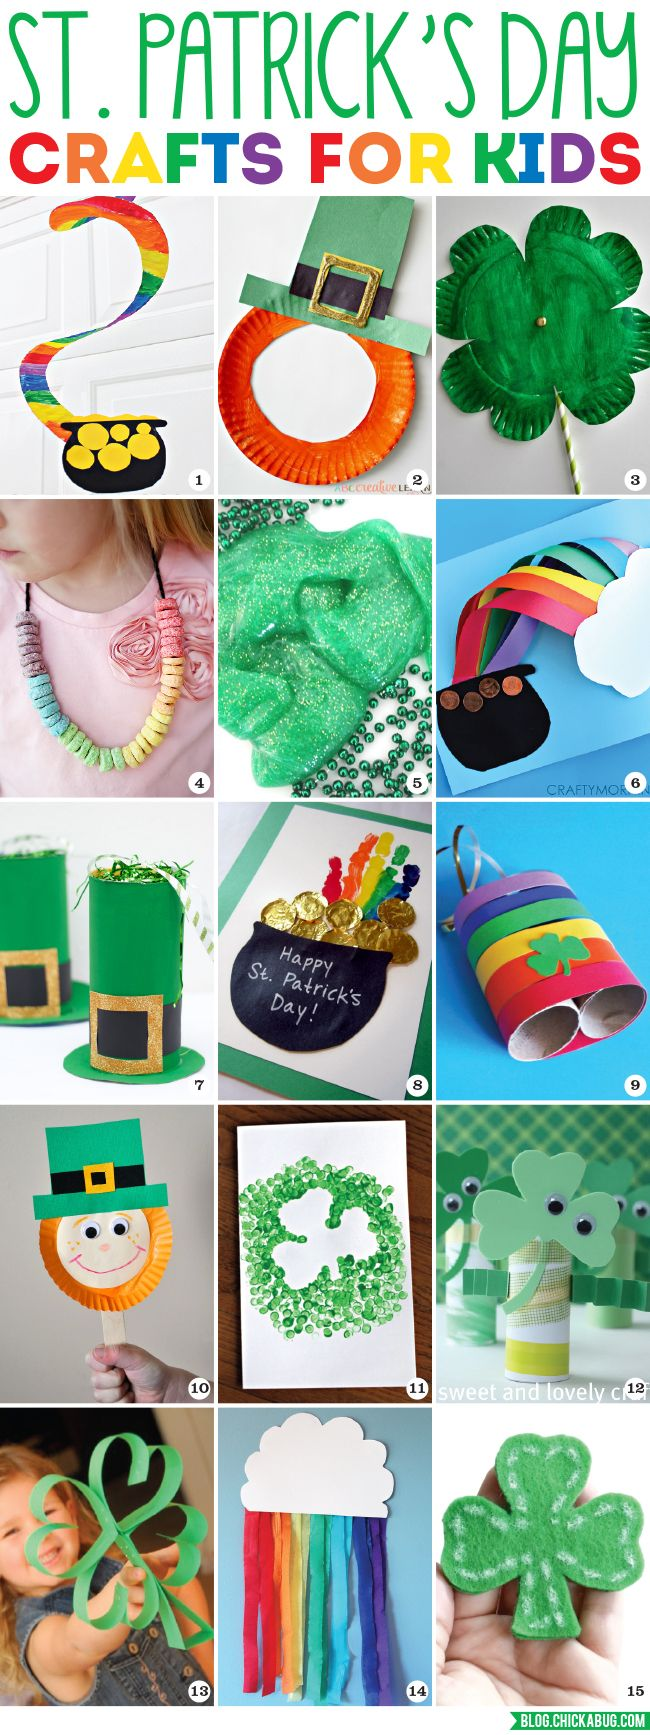 DIY Craft: St. Patrick's Day Crafts for Kids. Celebrate St. Patrick's Day with these cute and easy holiday crafts!